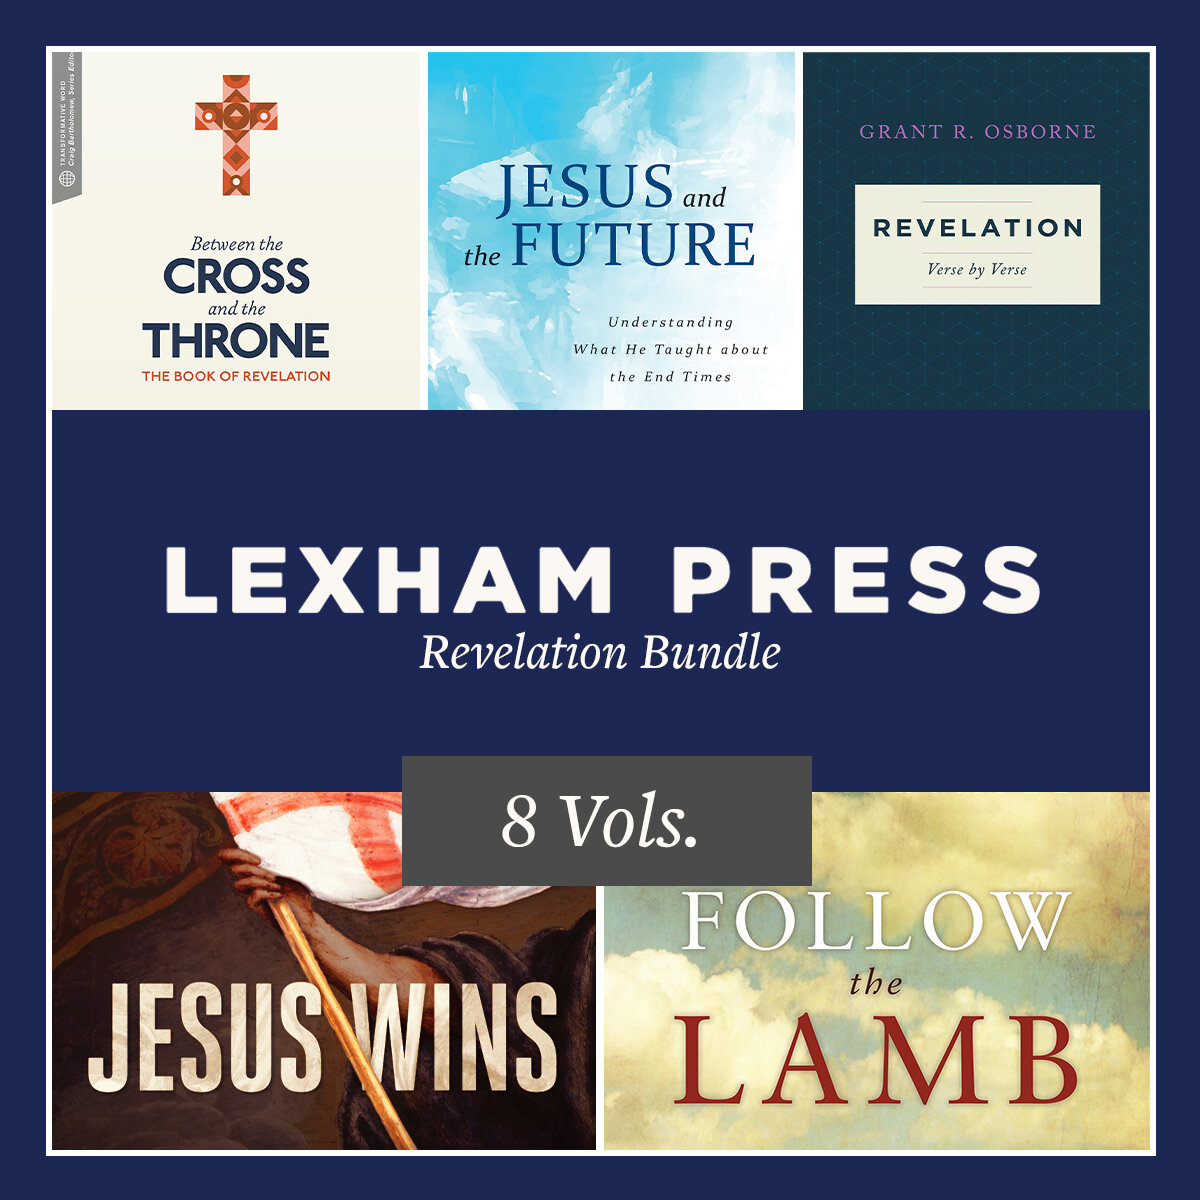 Lexham Press Revelation Bundle (8 vols.)